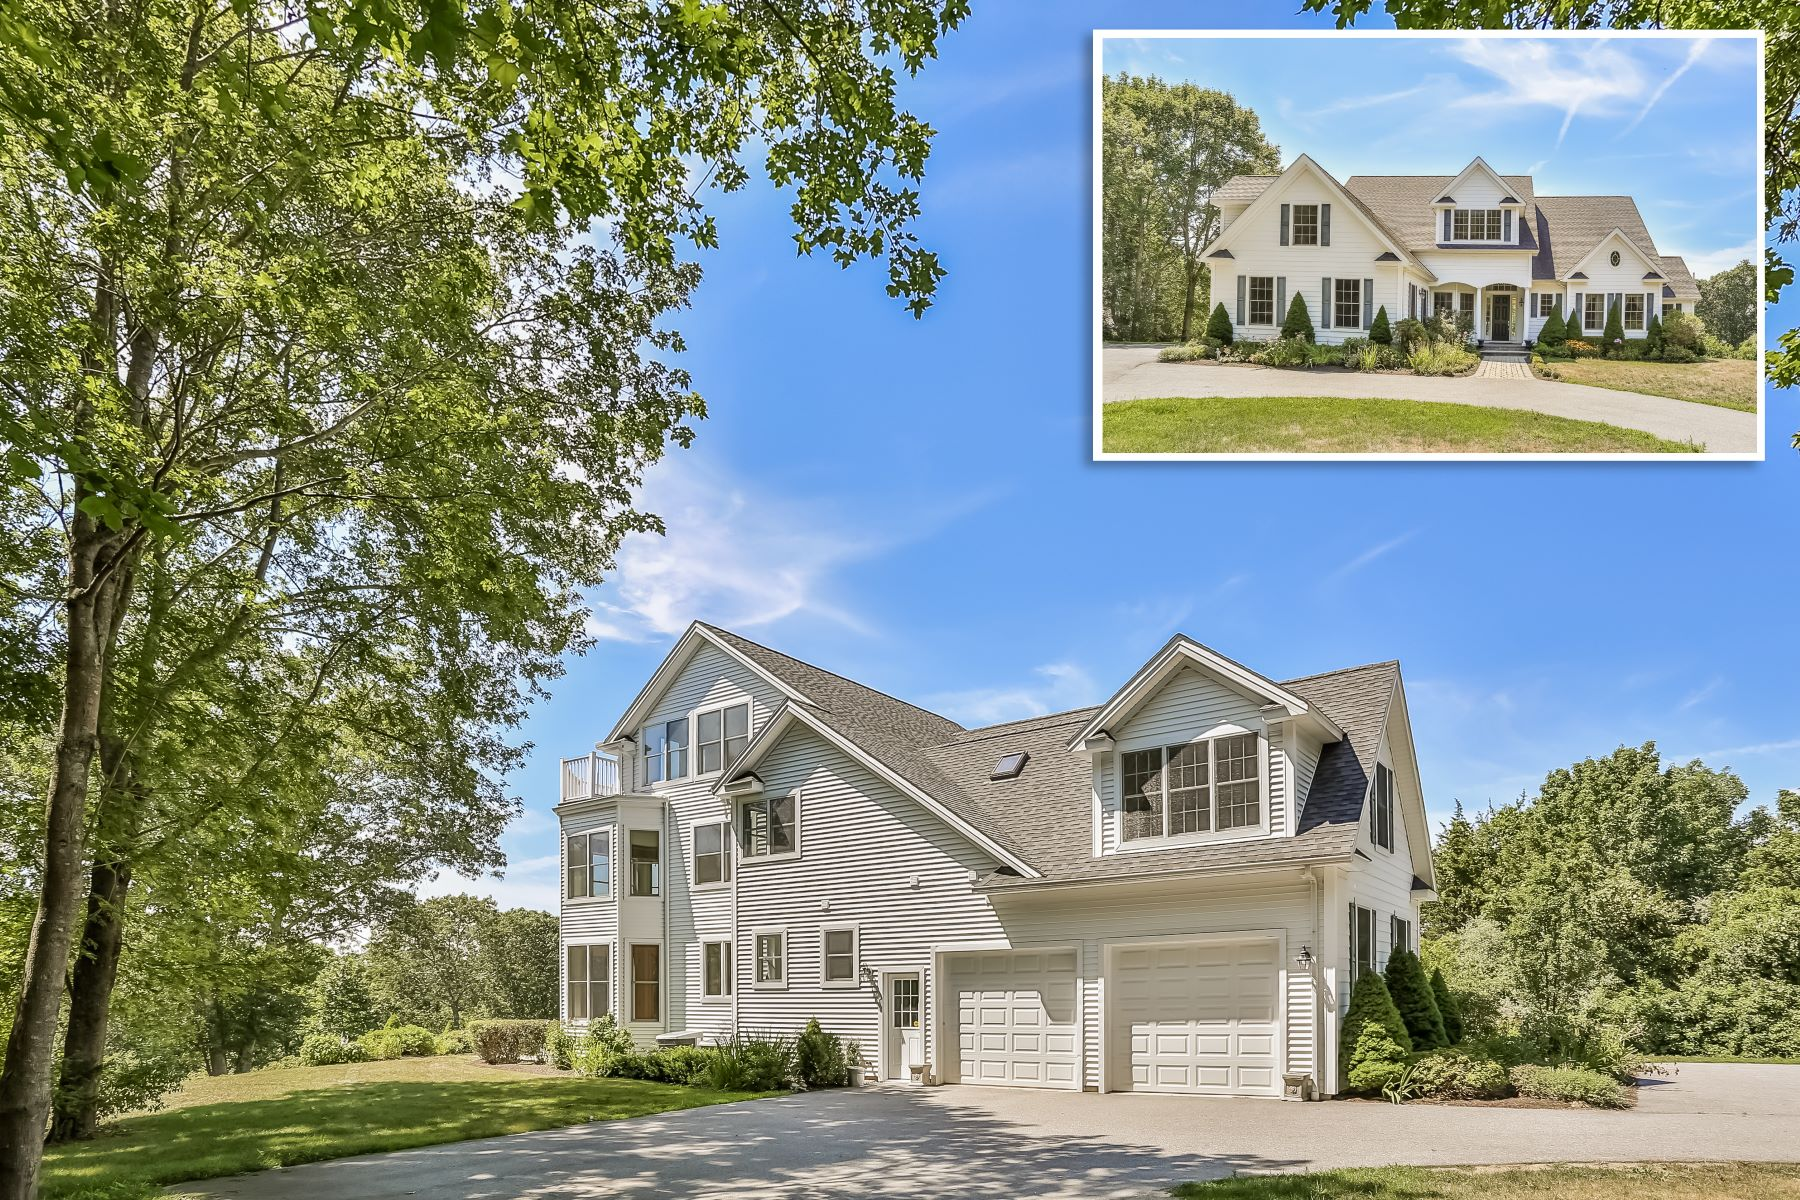 Single Family Home for Sale at Beautifully Appointed Custom Colonial 173 Montauk Avenue Stonington, Connecticut 06378 United States